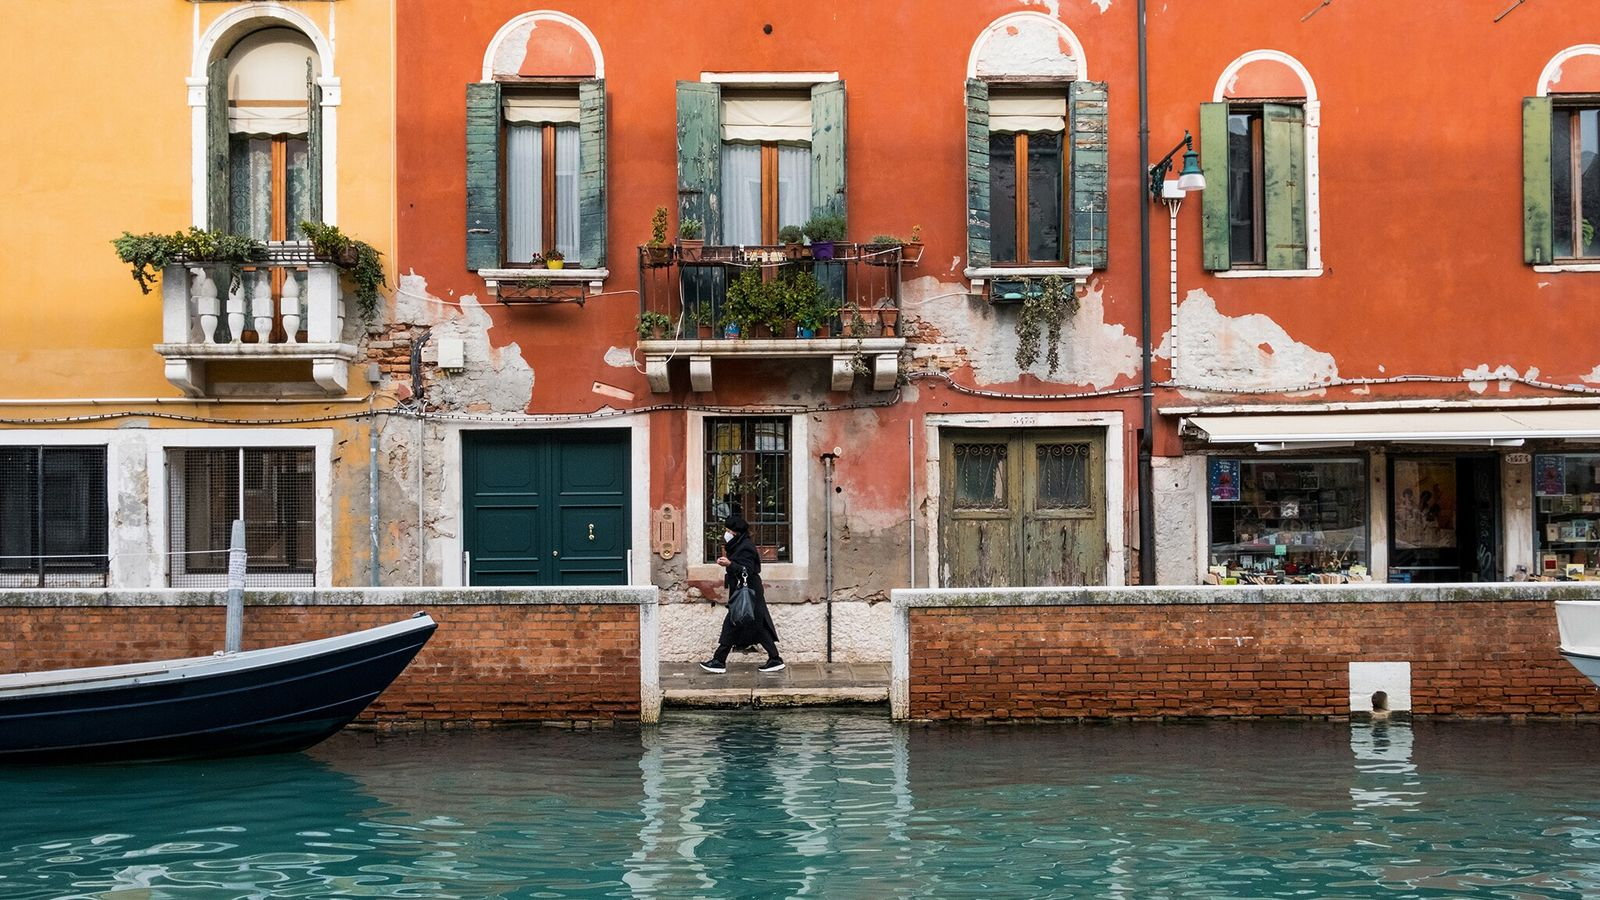 A street scene in Dorsoduro, one of the six main districts of central Venice.